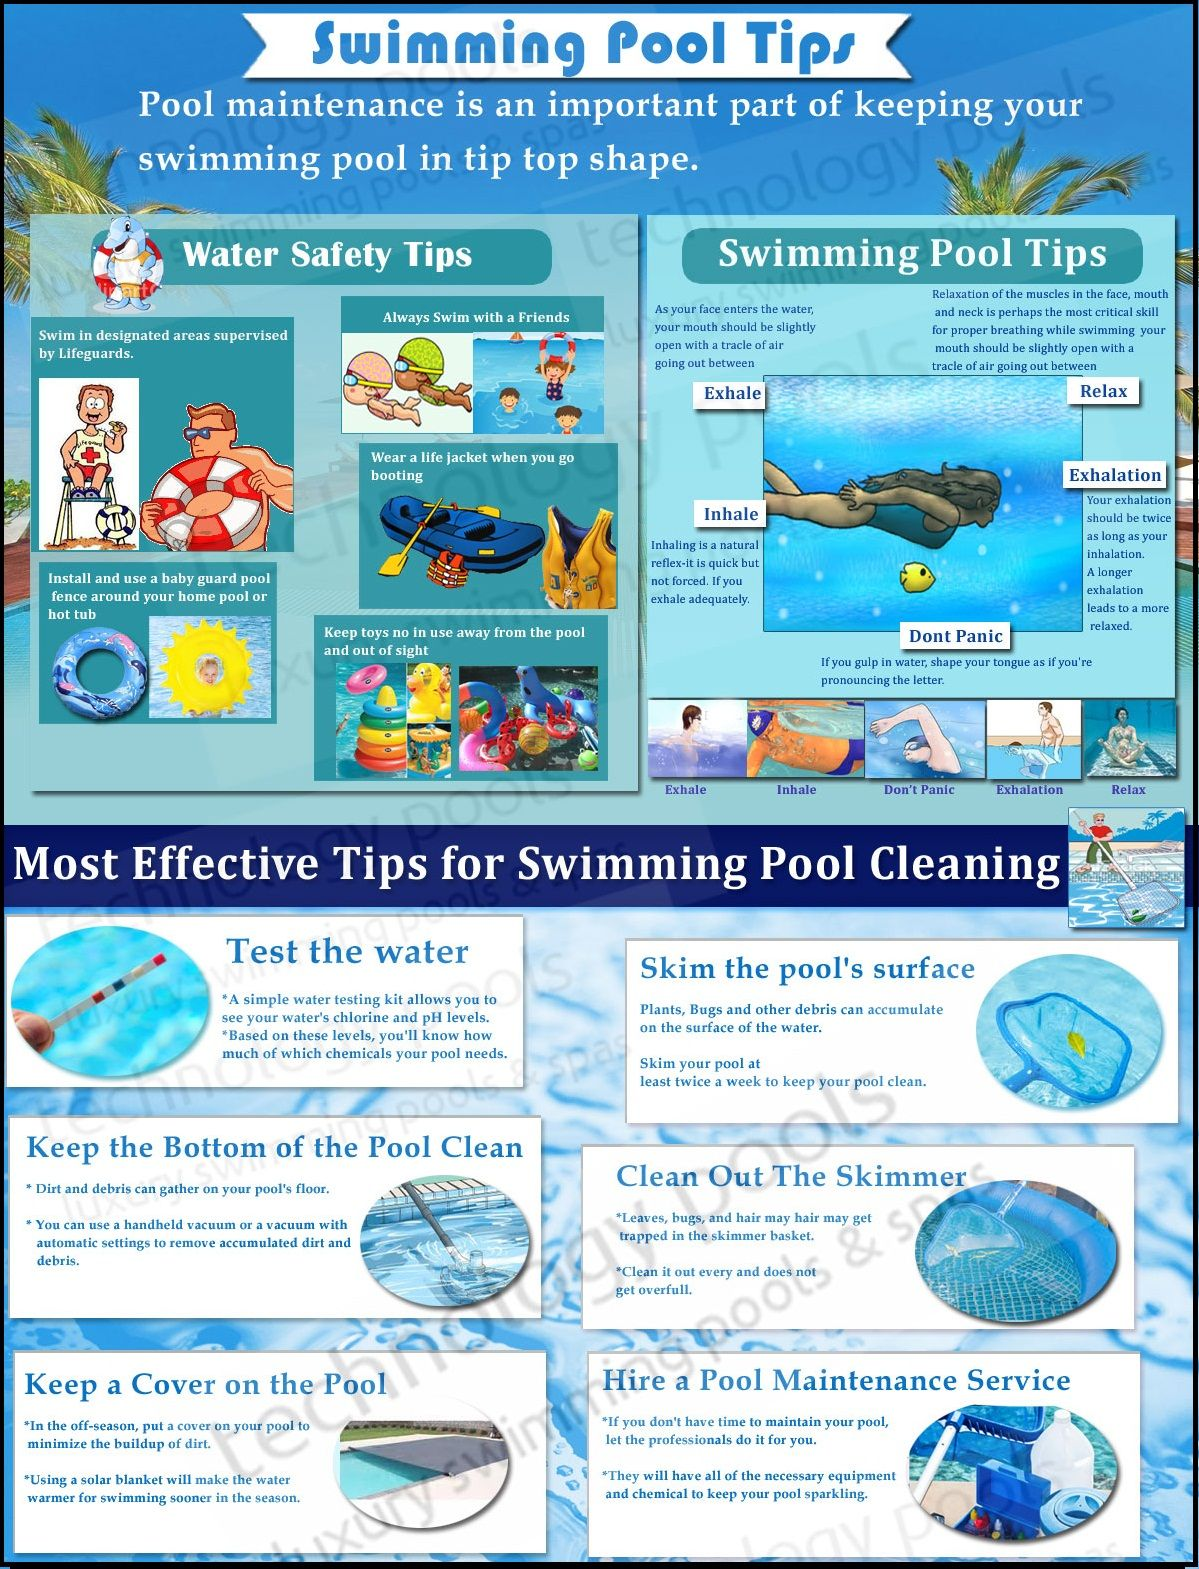 Swimming Pool Maintenance Tips Infographic Www Swimmingpoolquotes Co Uk Swimmin Swimming Pool Maintenance Pool Cleaning Swimming Pool Cleaning